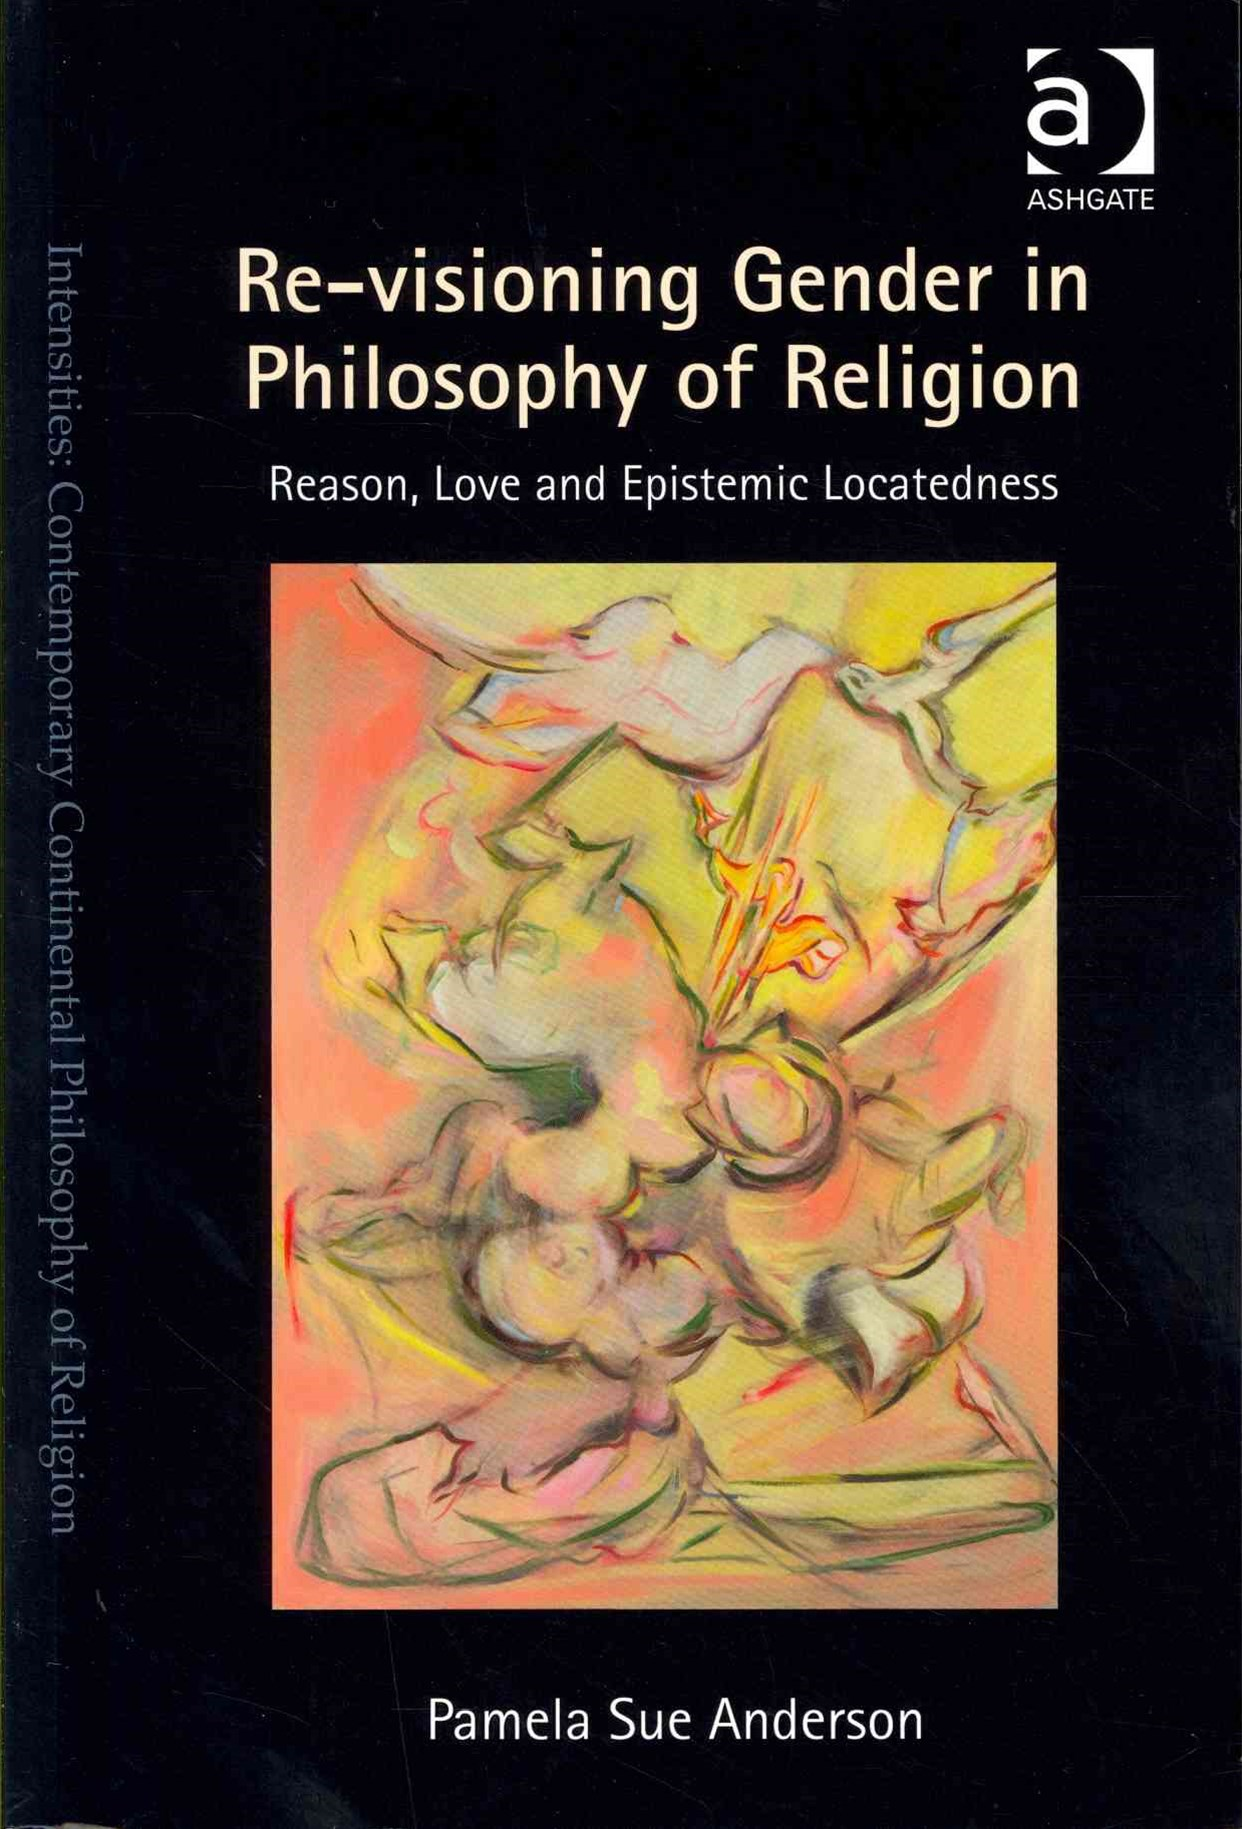 Re-Visioning Gender in Philosophy of Religion